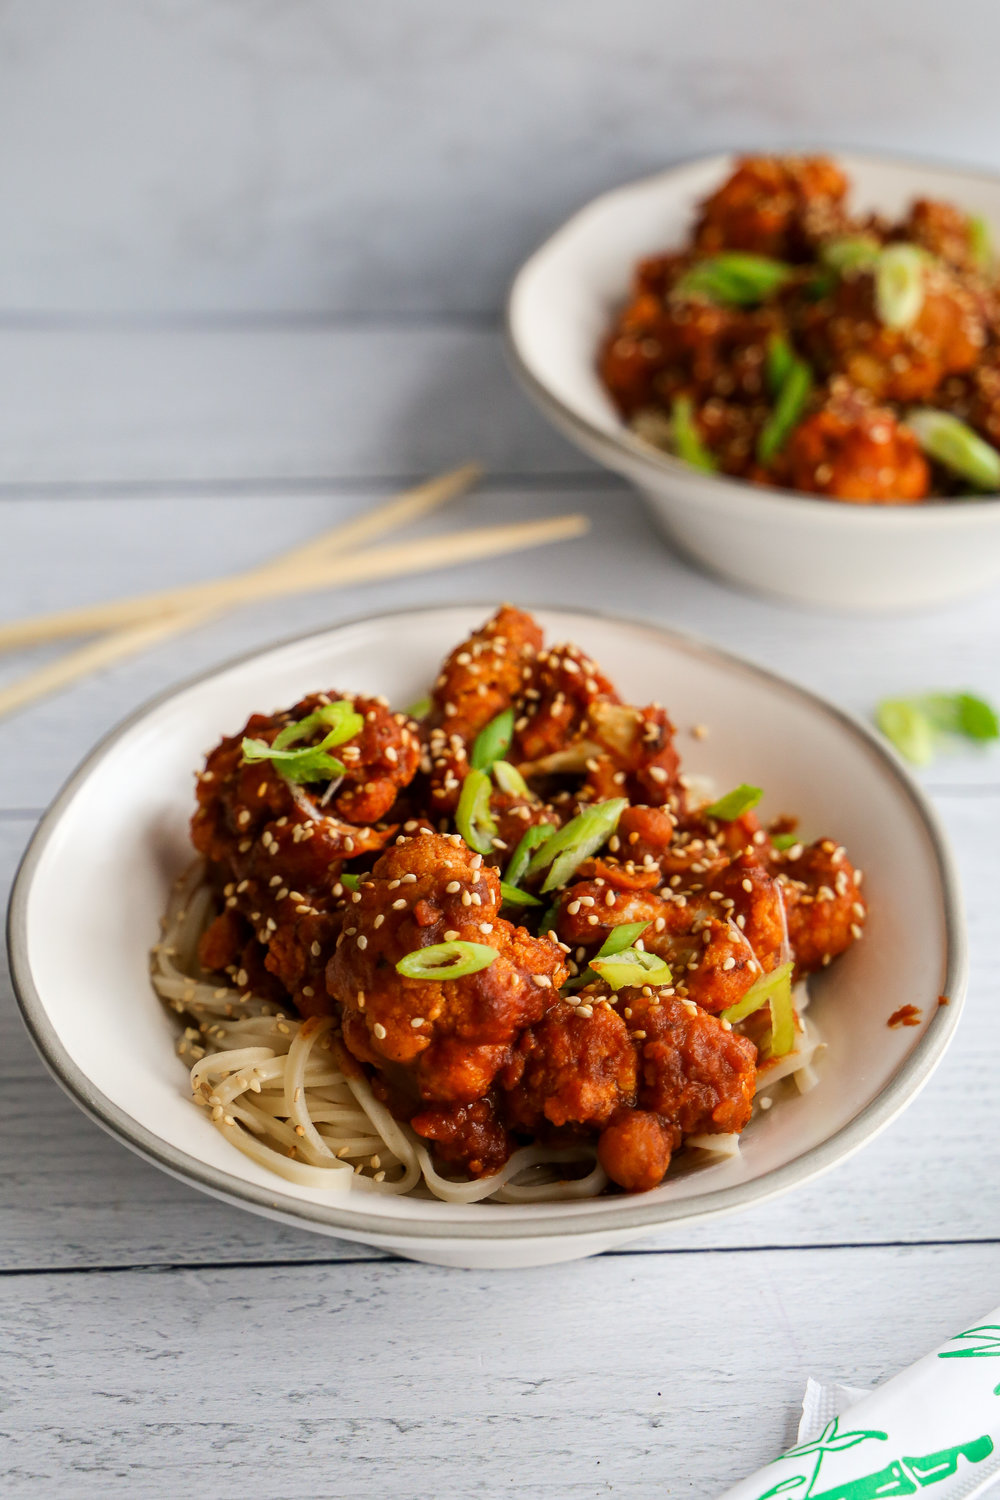 General Tso's Cauliflower and Good Omens